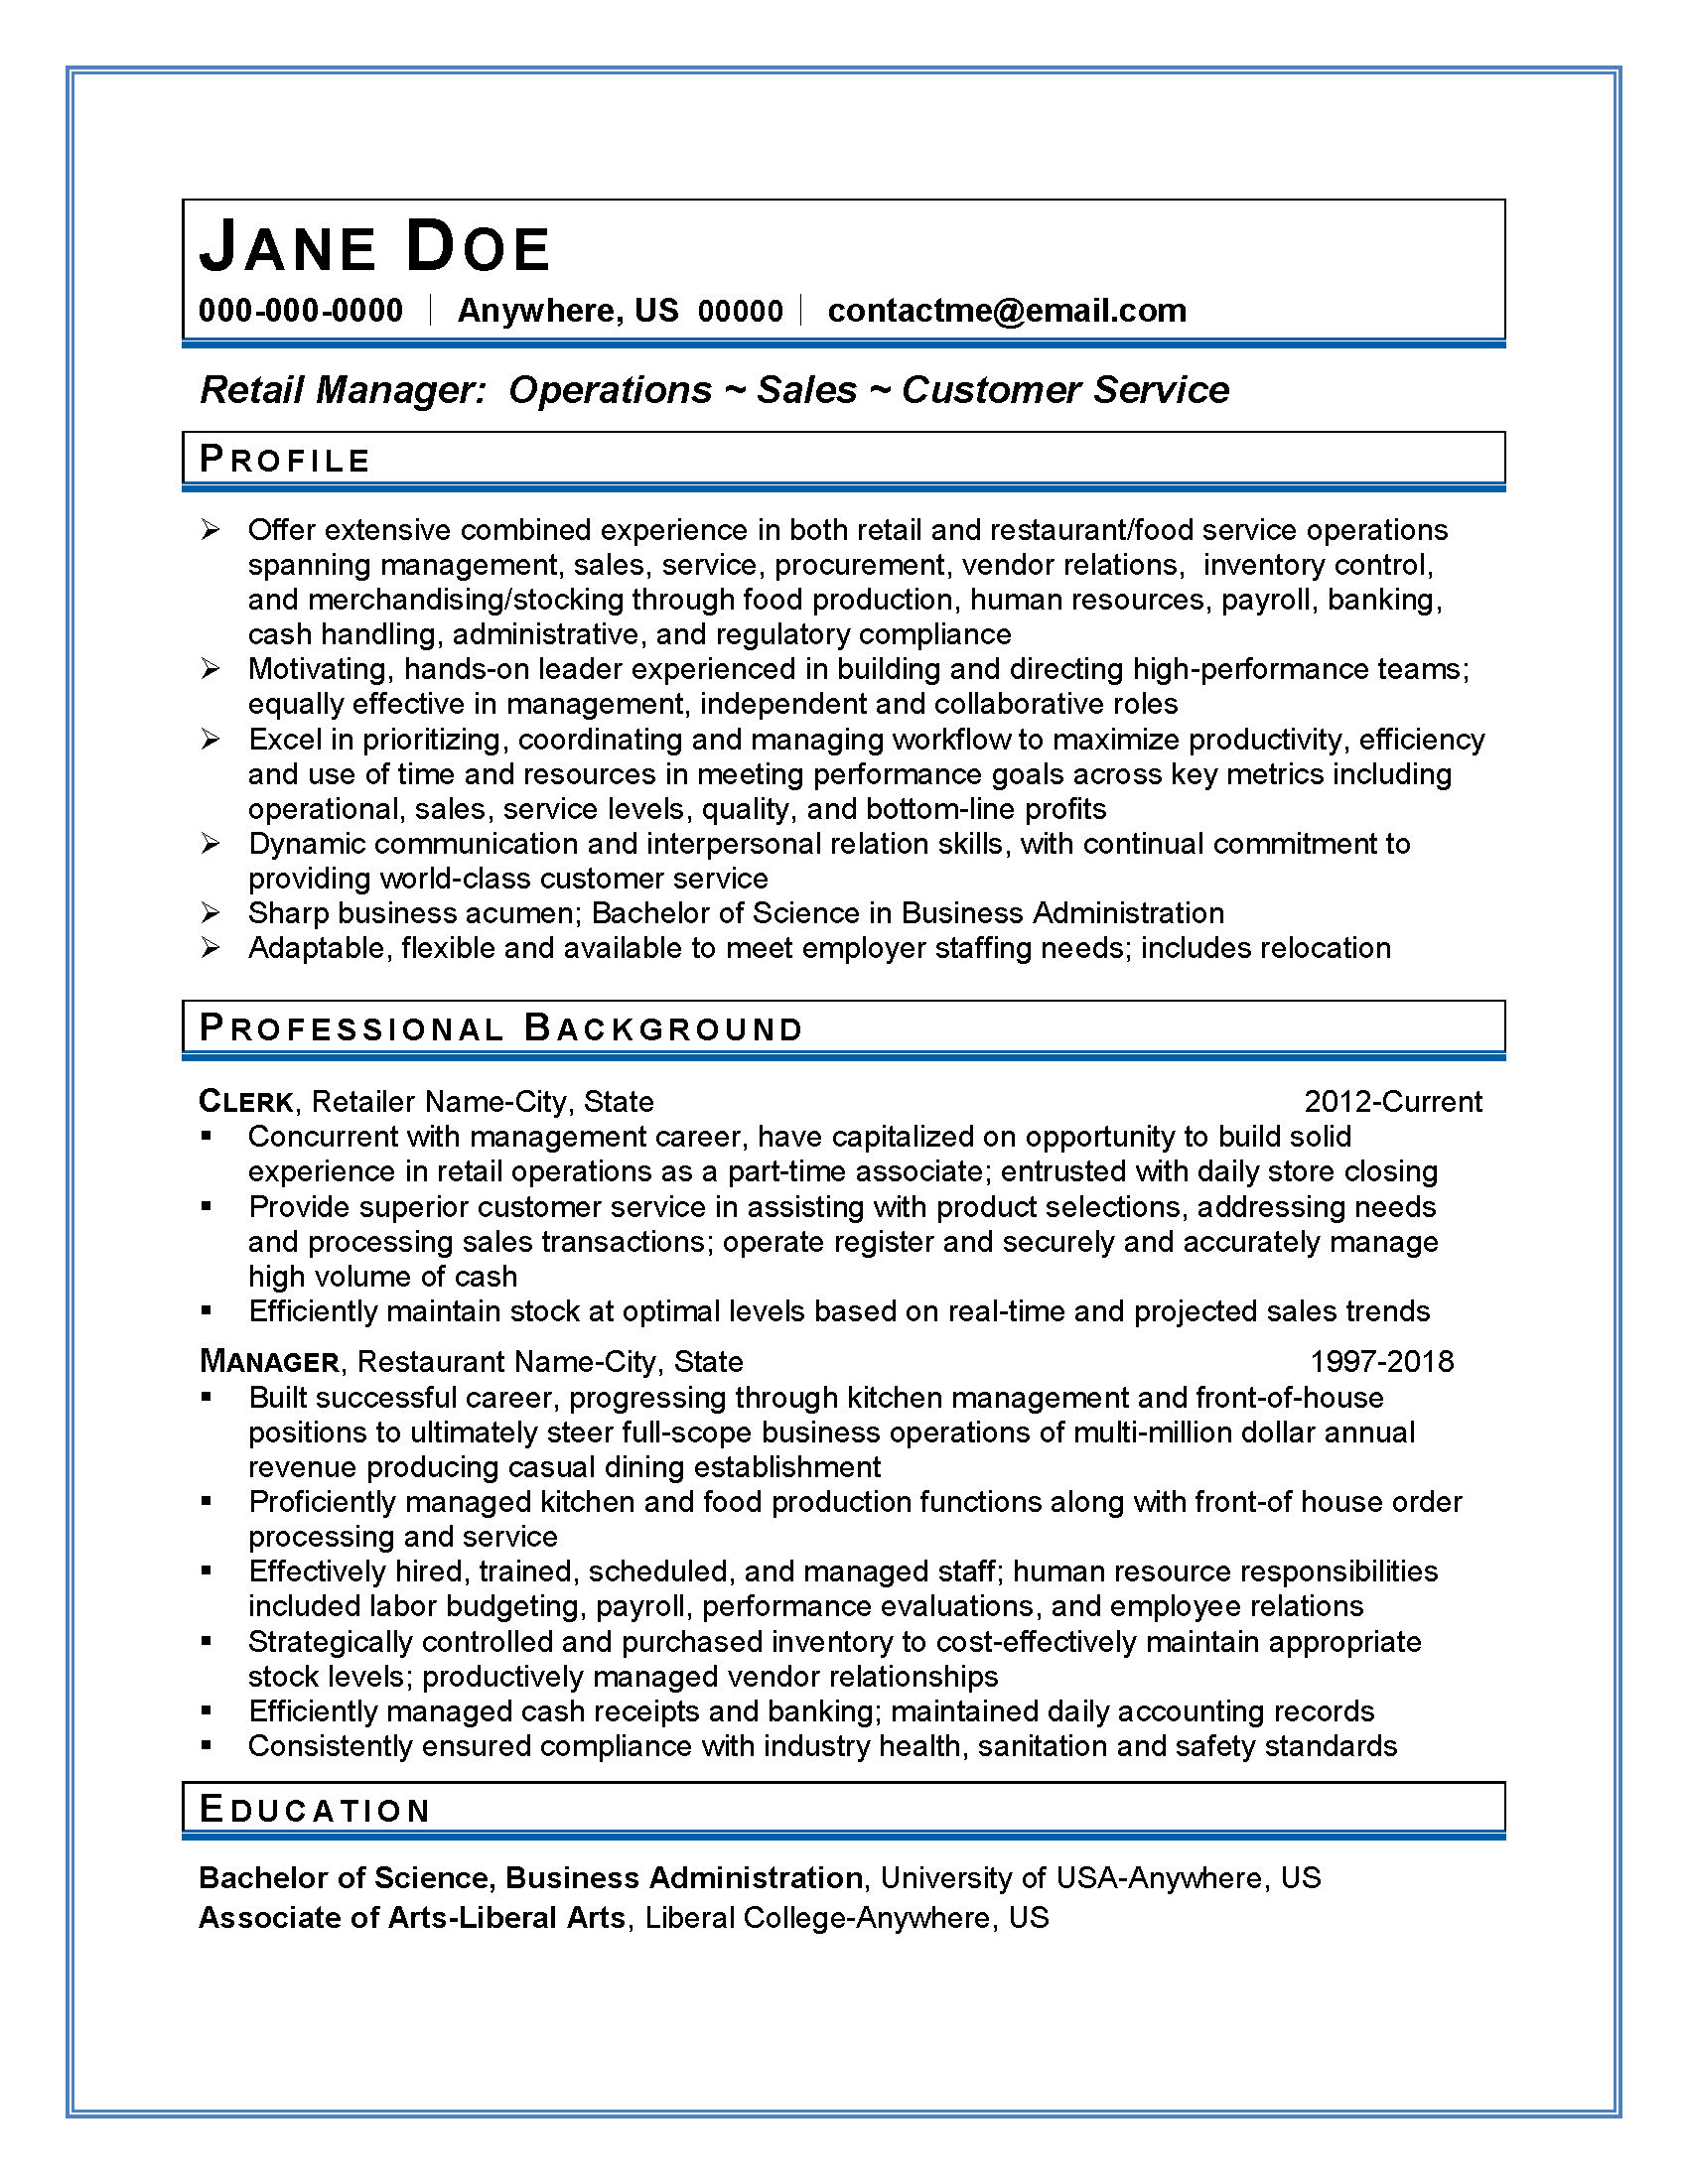 applicant tracking system (ATS) resume